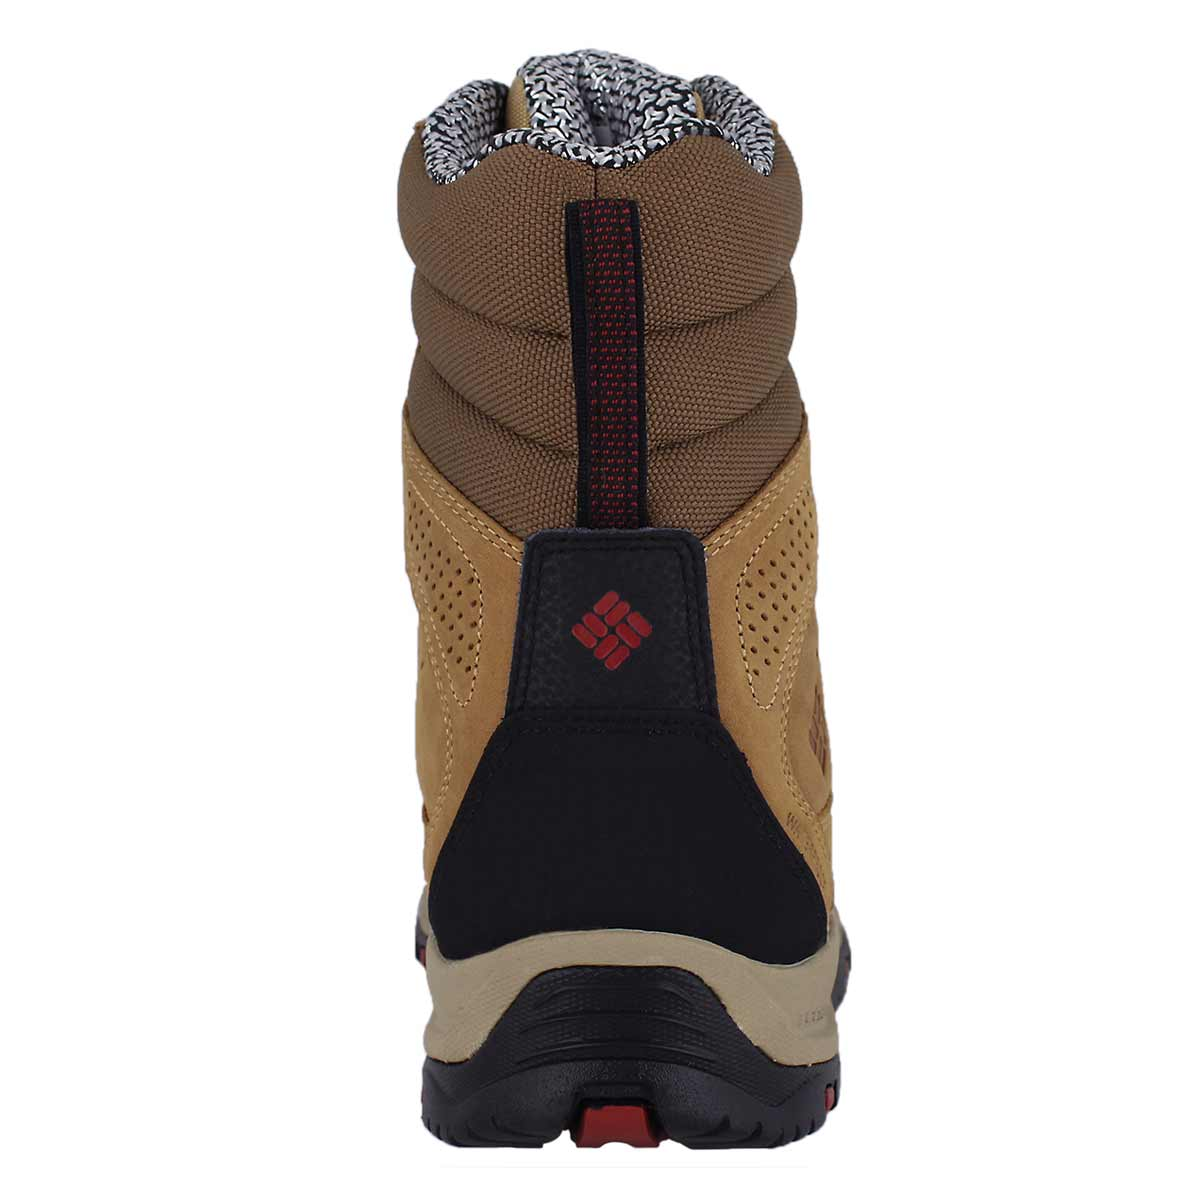 Mns Gunnison Plus OmniHeat curry wp boot